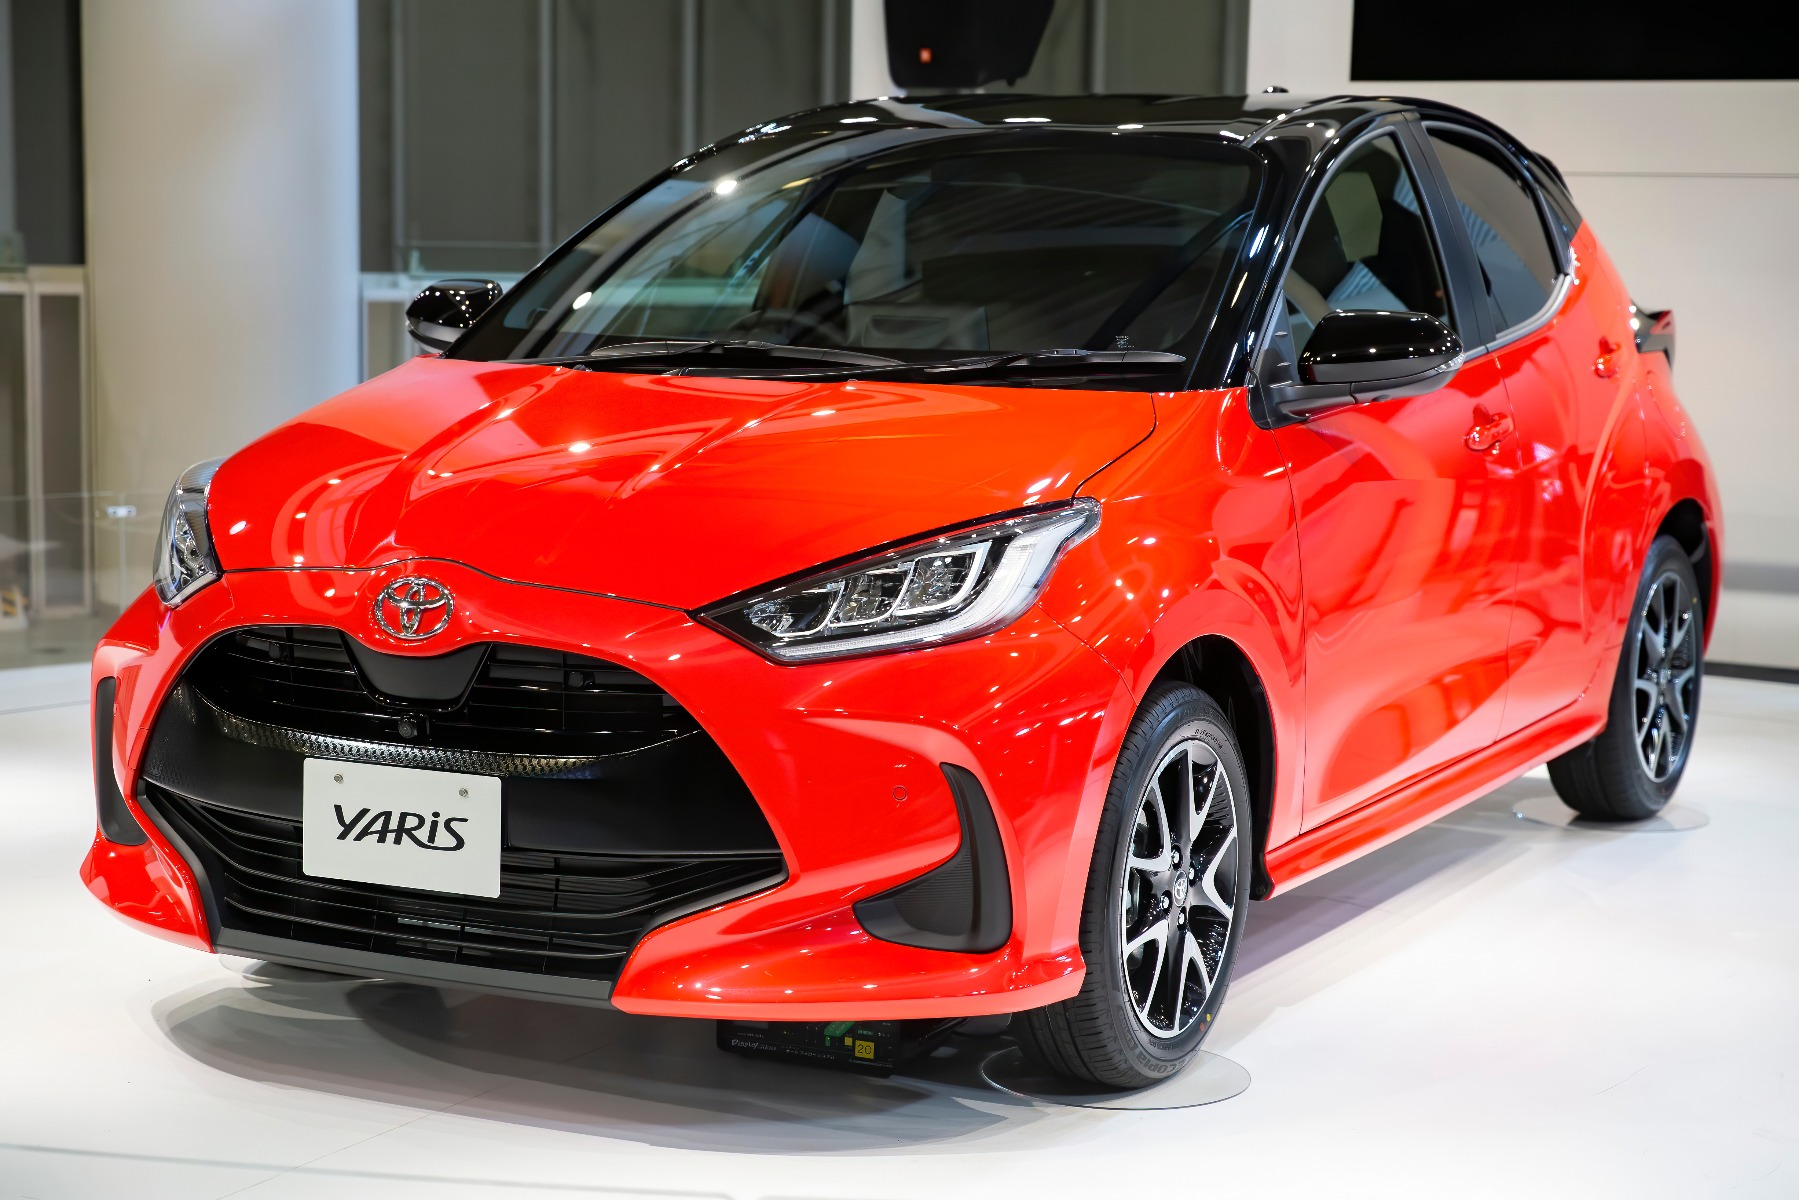 how much is the average Toyota Yaris car battery price